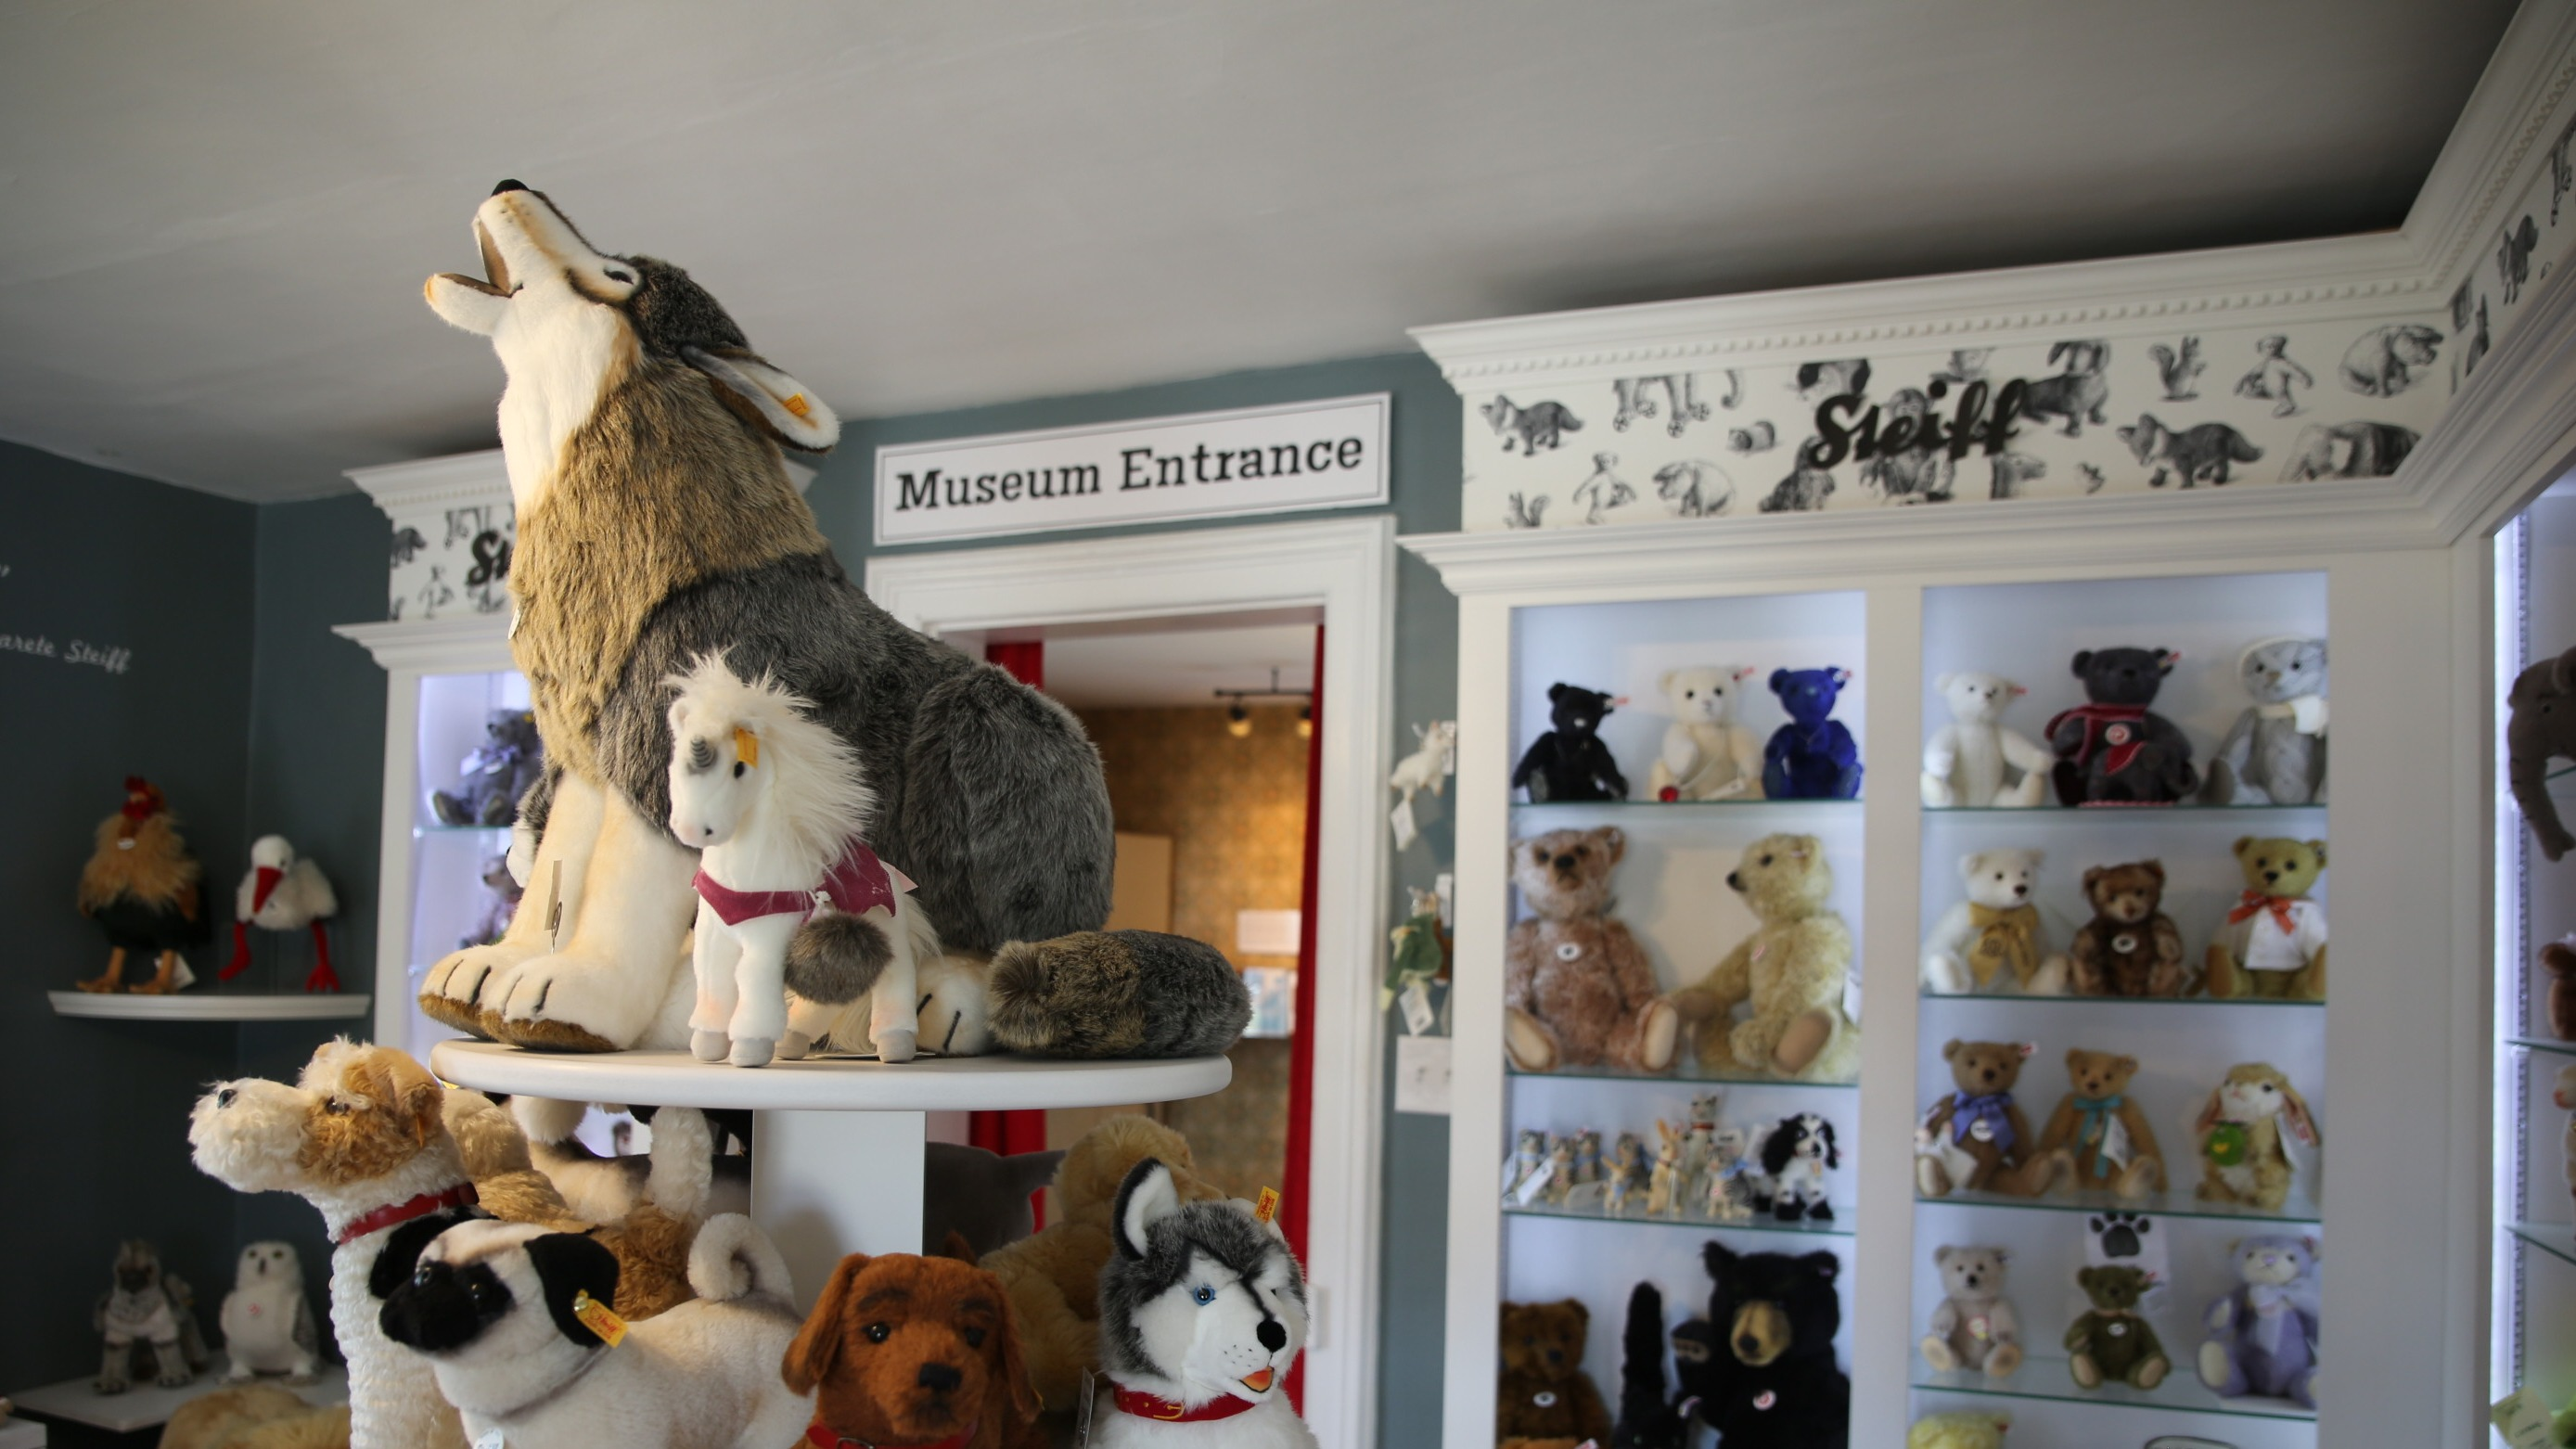 There is something for everyone in the Teddy Bear Museum and the Steiff Gift Shop